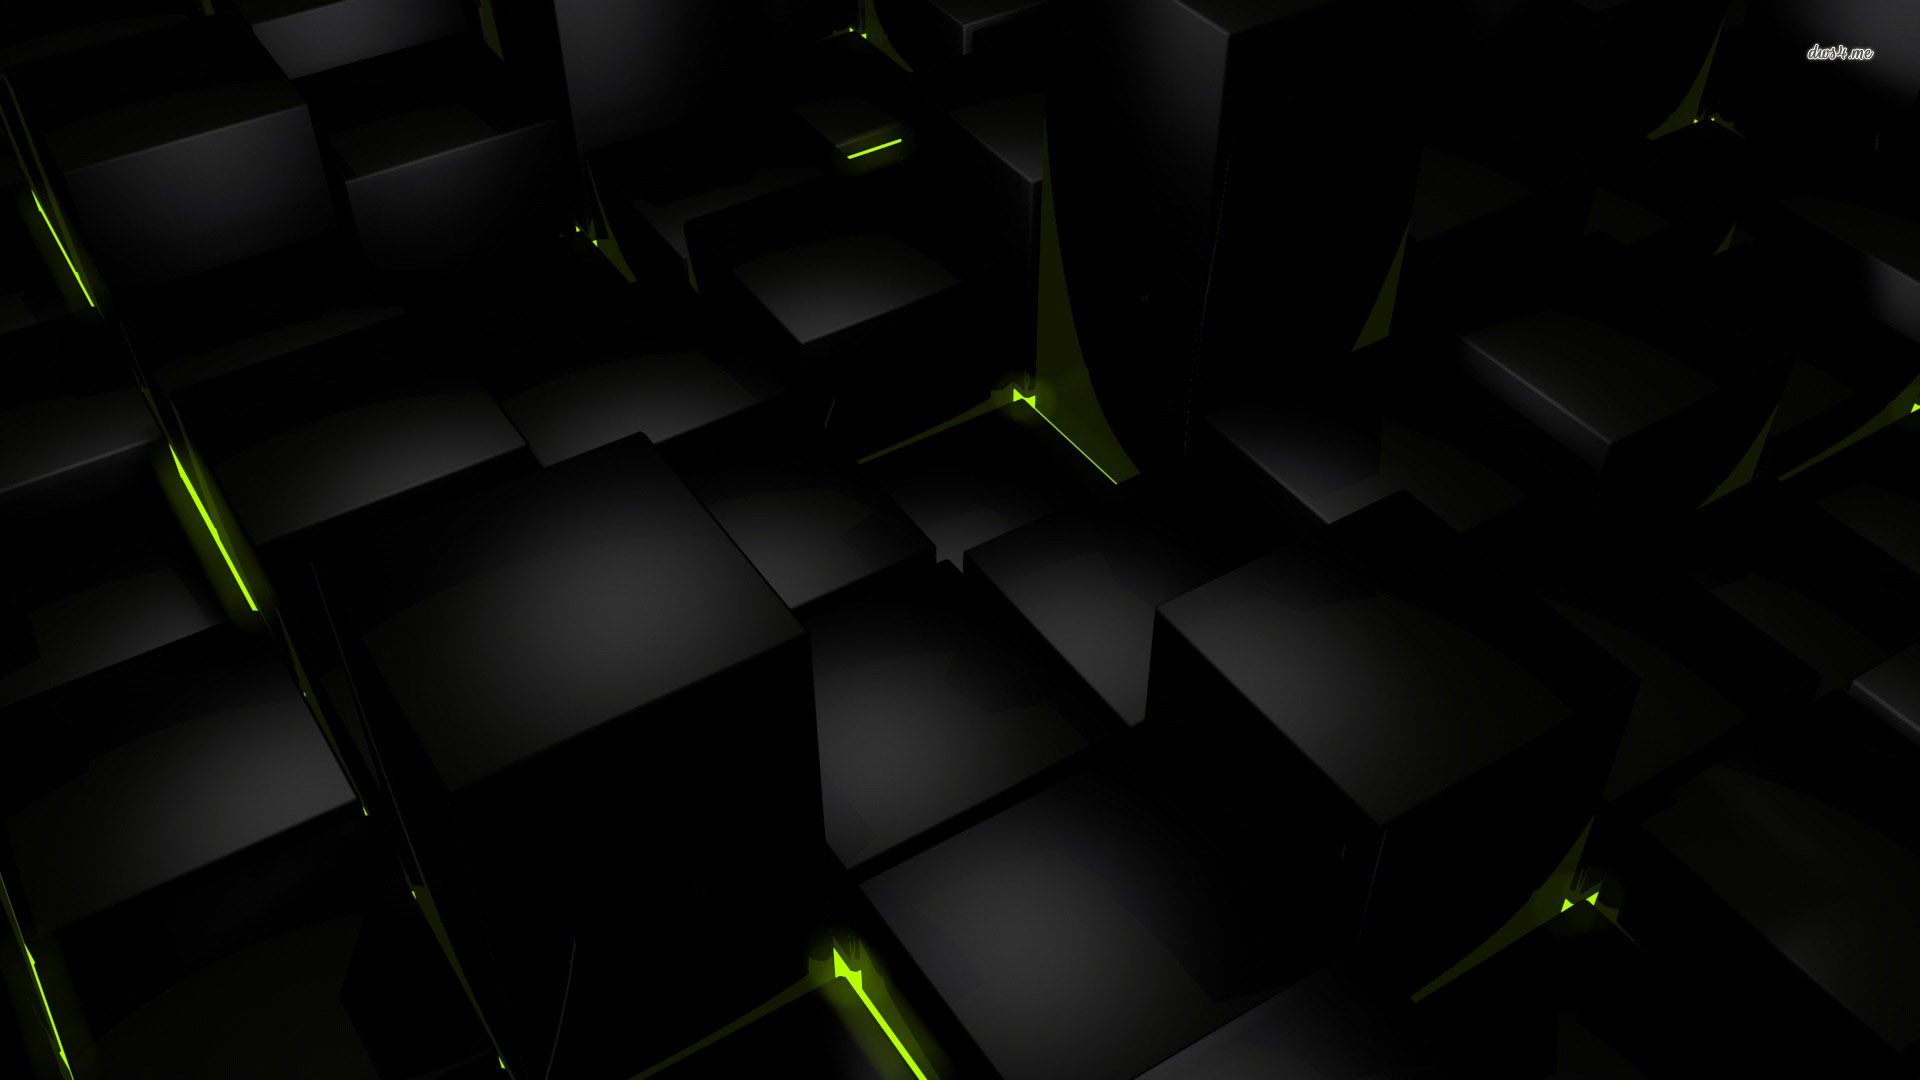 Black abstract wallpaper with green lines HD Abstract